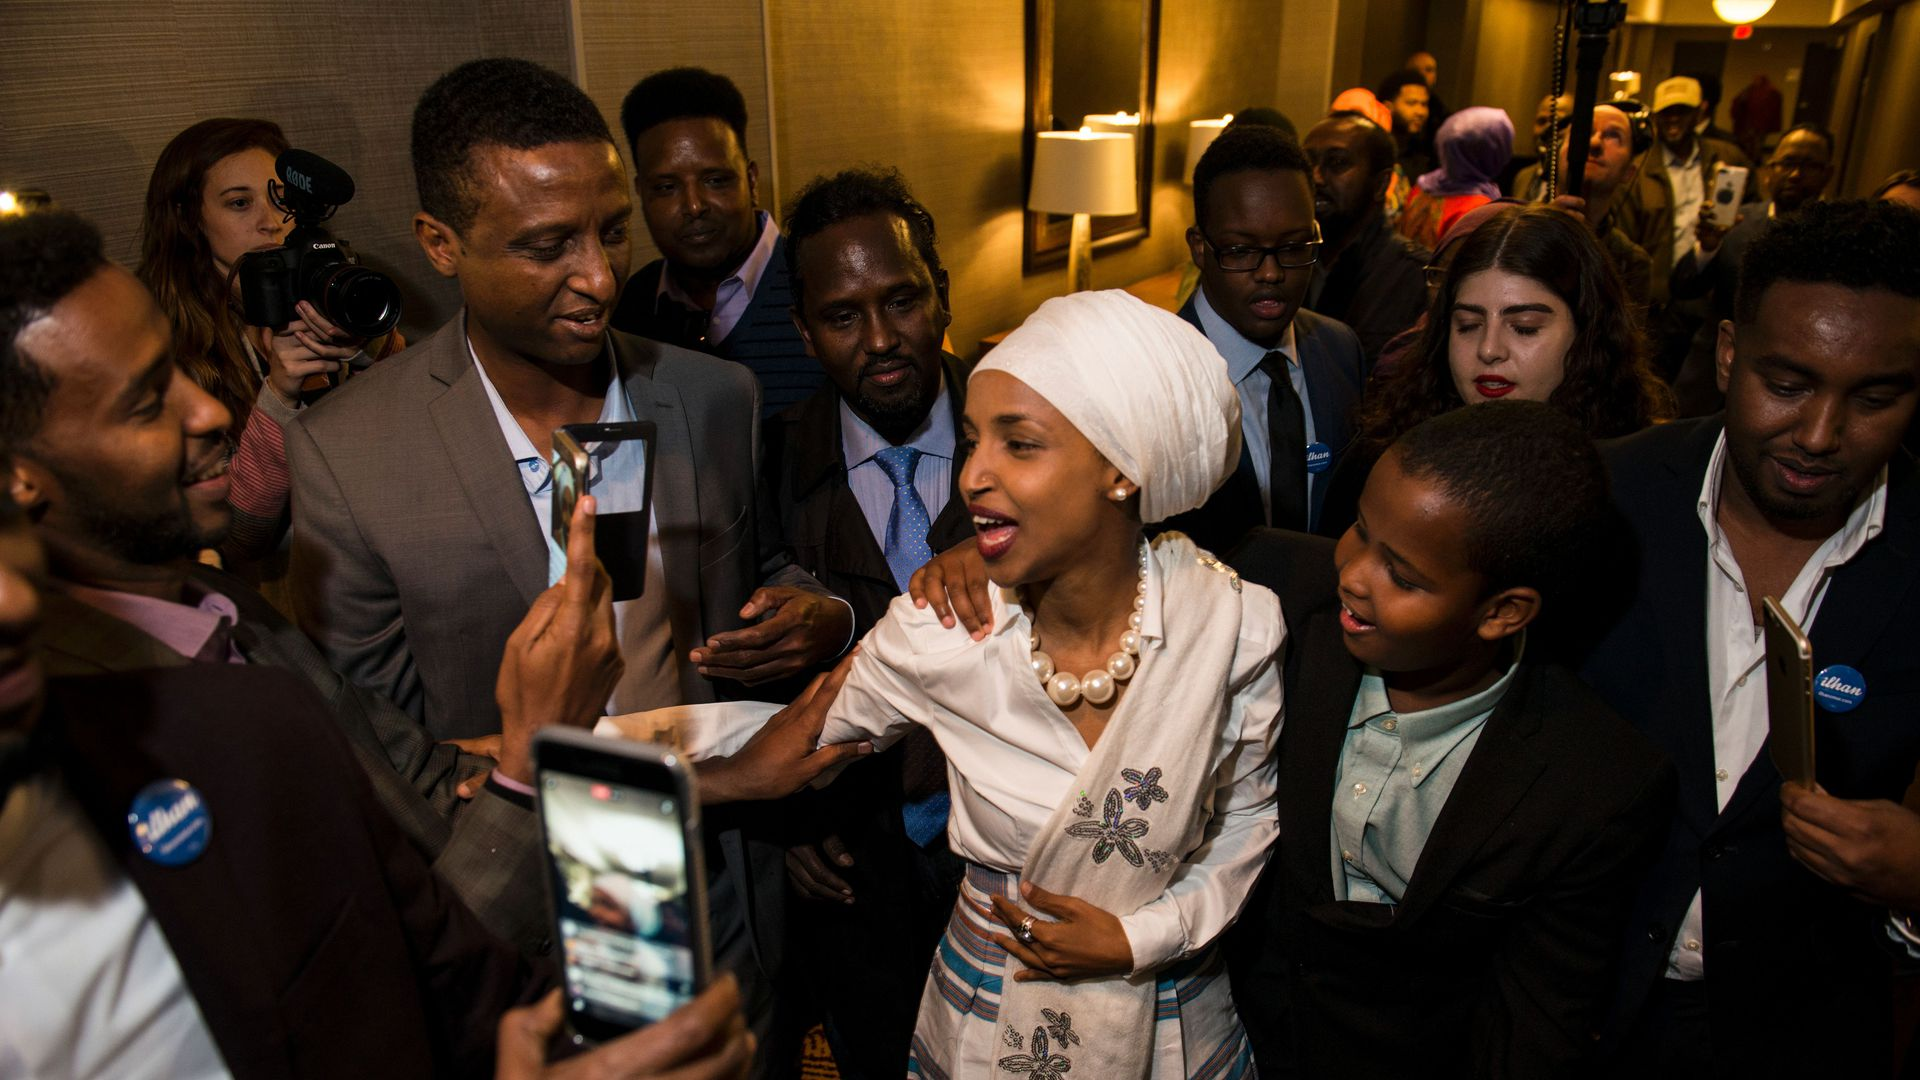 Ilhan Omar, at a campaign event in November 2016 in Minneapolis, Minnesota. Photo: Stephen Maturen/AFP/Getty Images